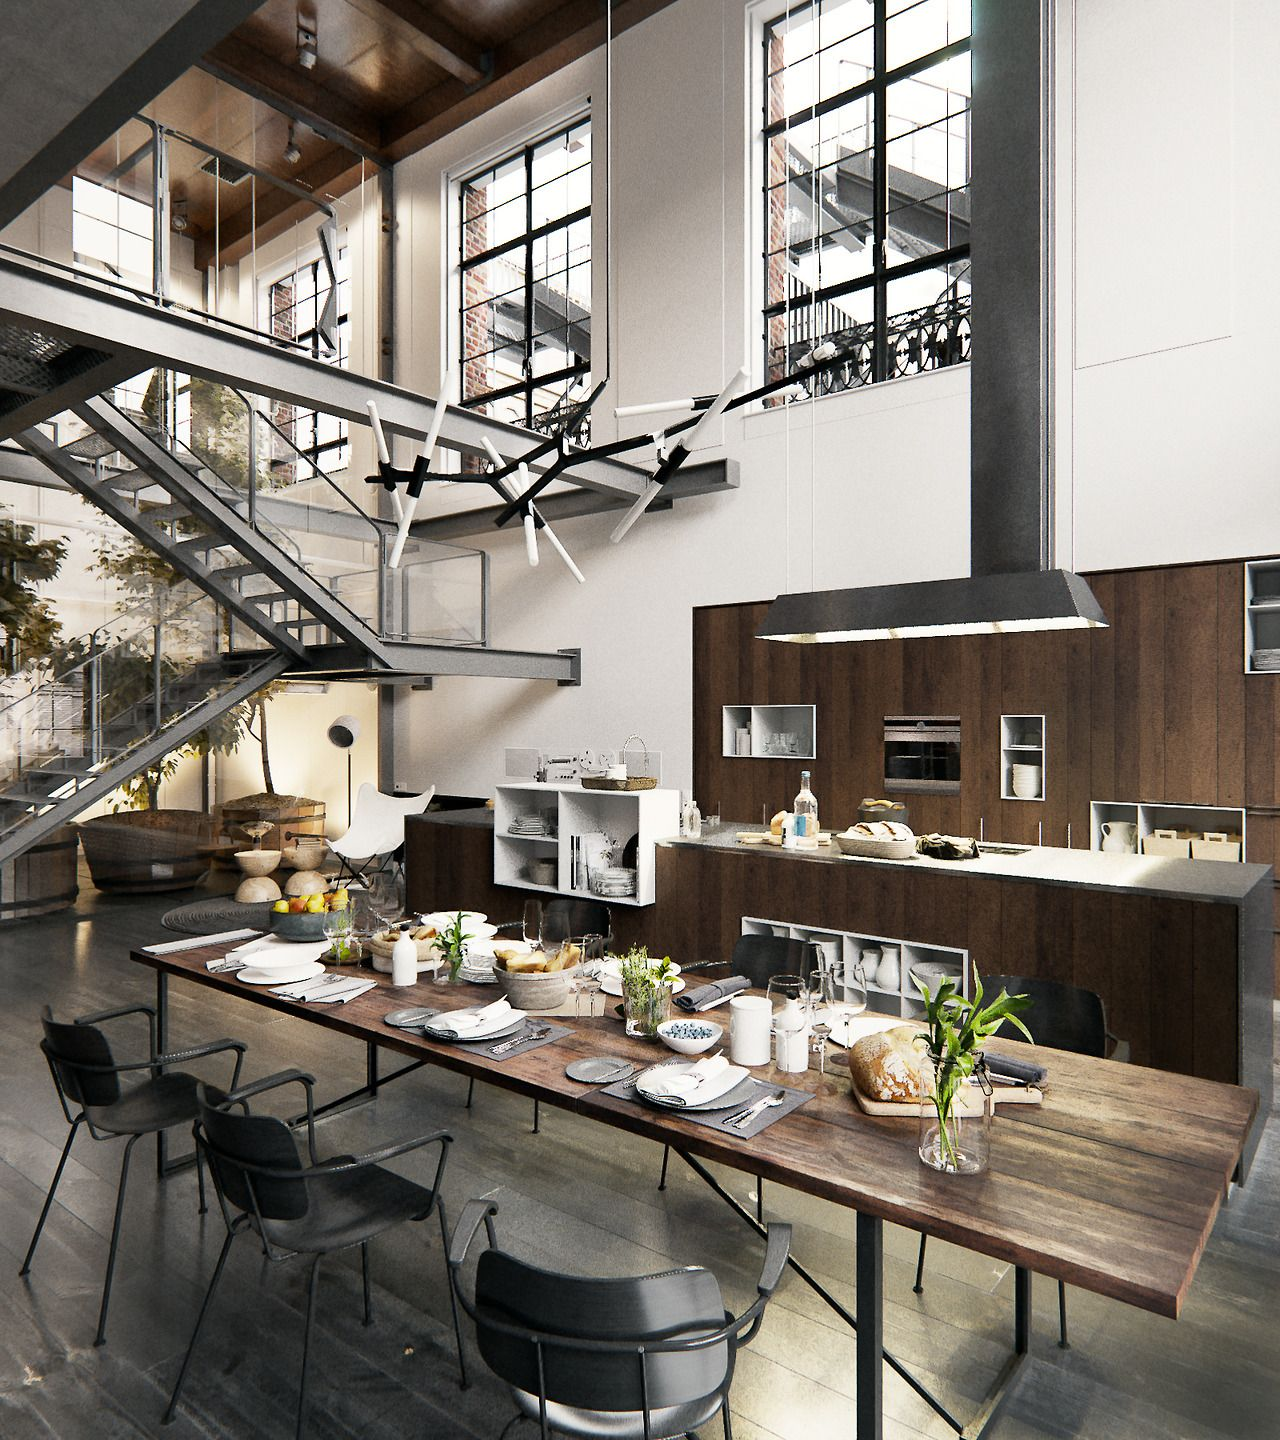 extraordinary new york loft living room | New York loft kitchen | Industrial and Loft Living | Loft ...